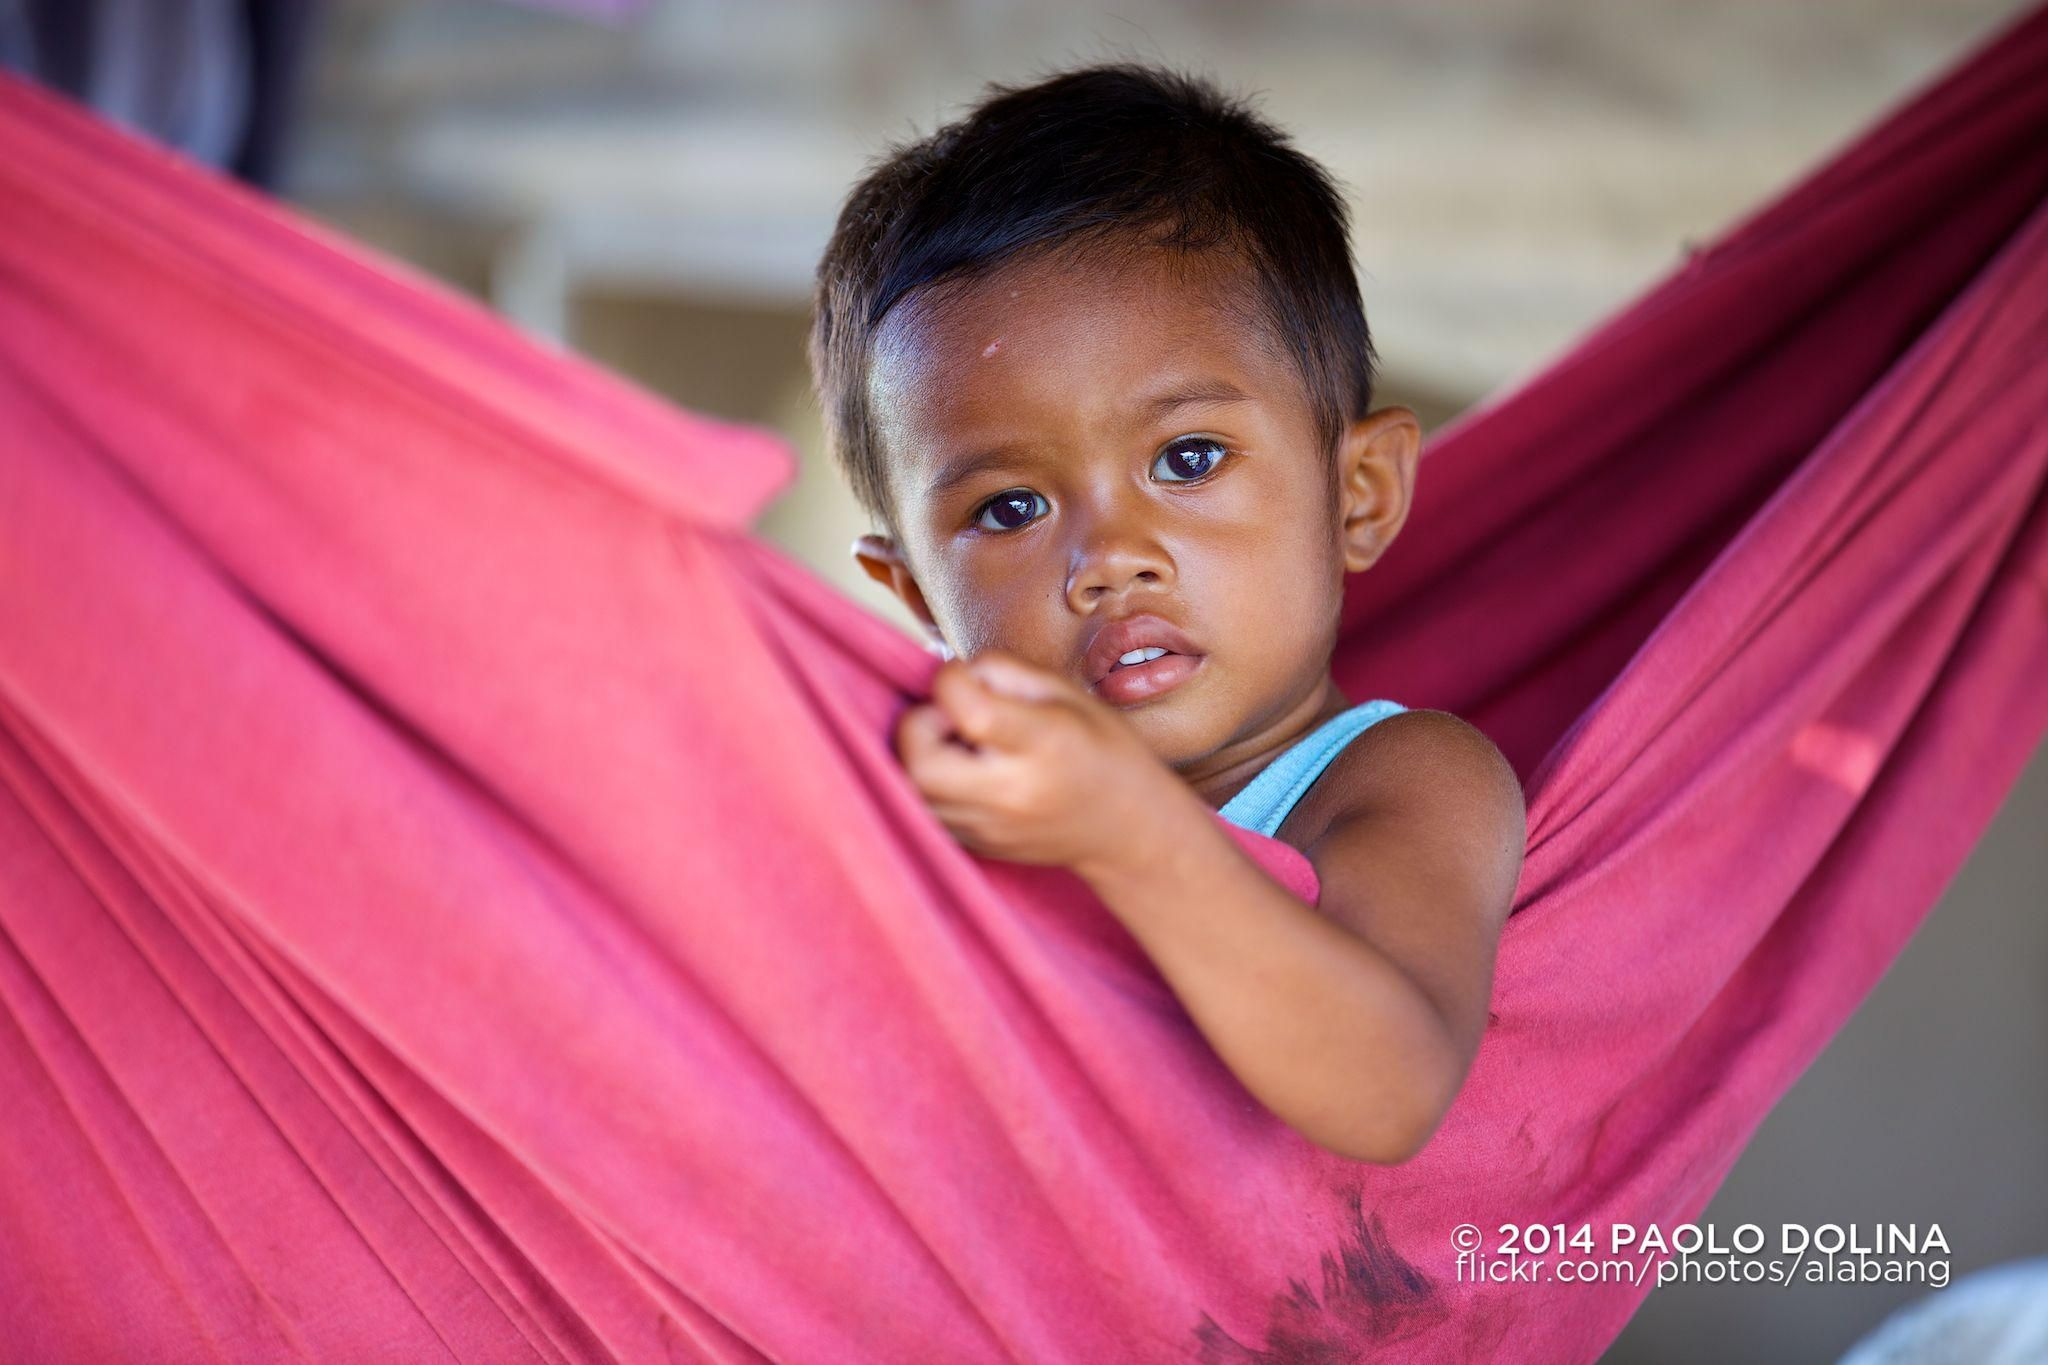 Tanauan Tent City Babes by Paolo Dolina on 500px